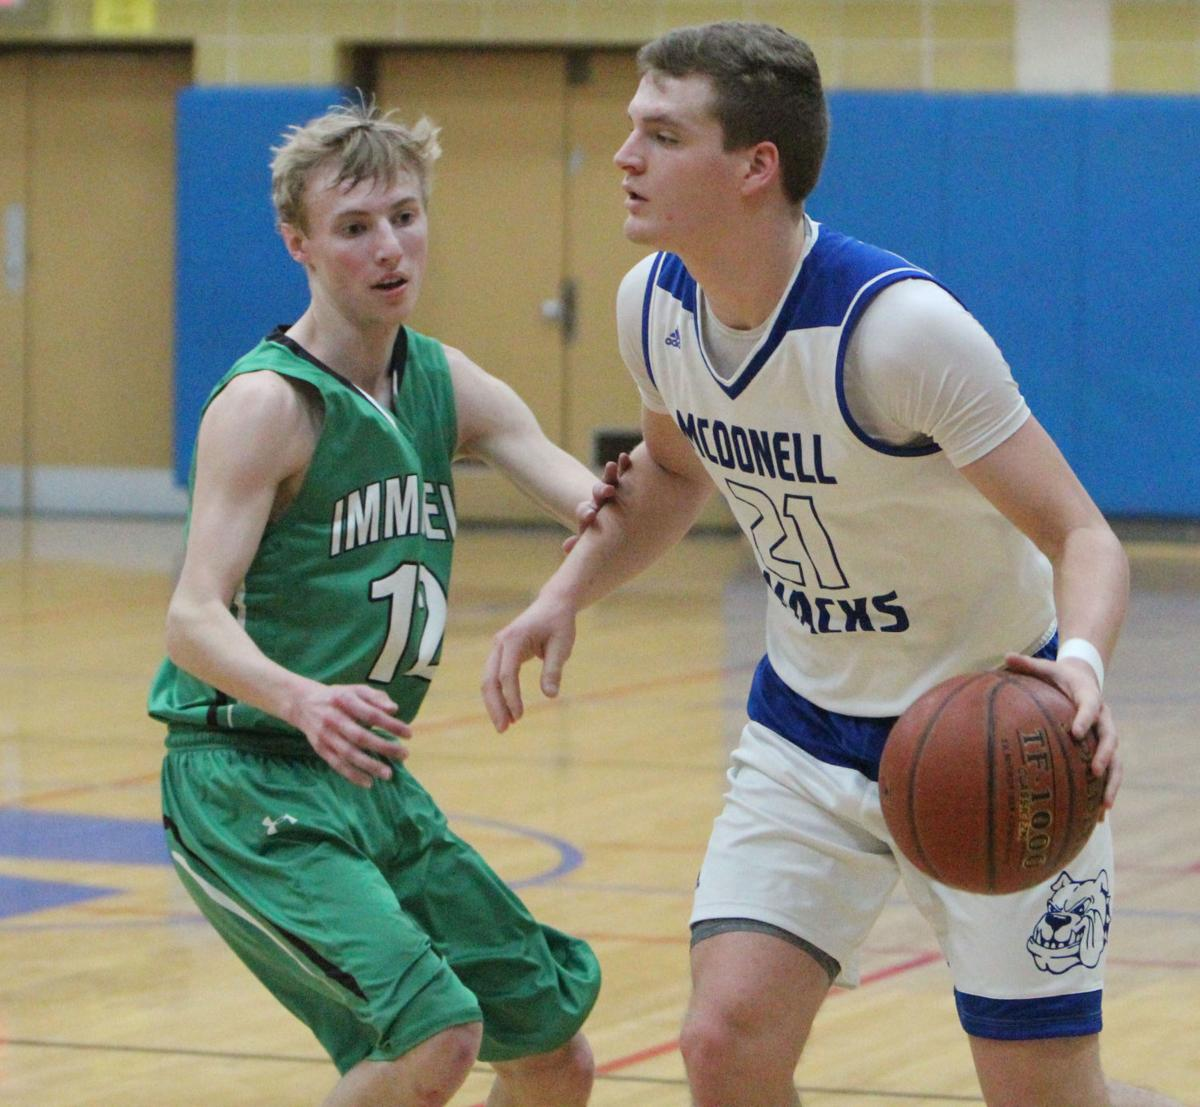 Eau Claire Immanuel at McDonell boys basketball 3-2-18